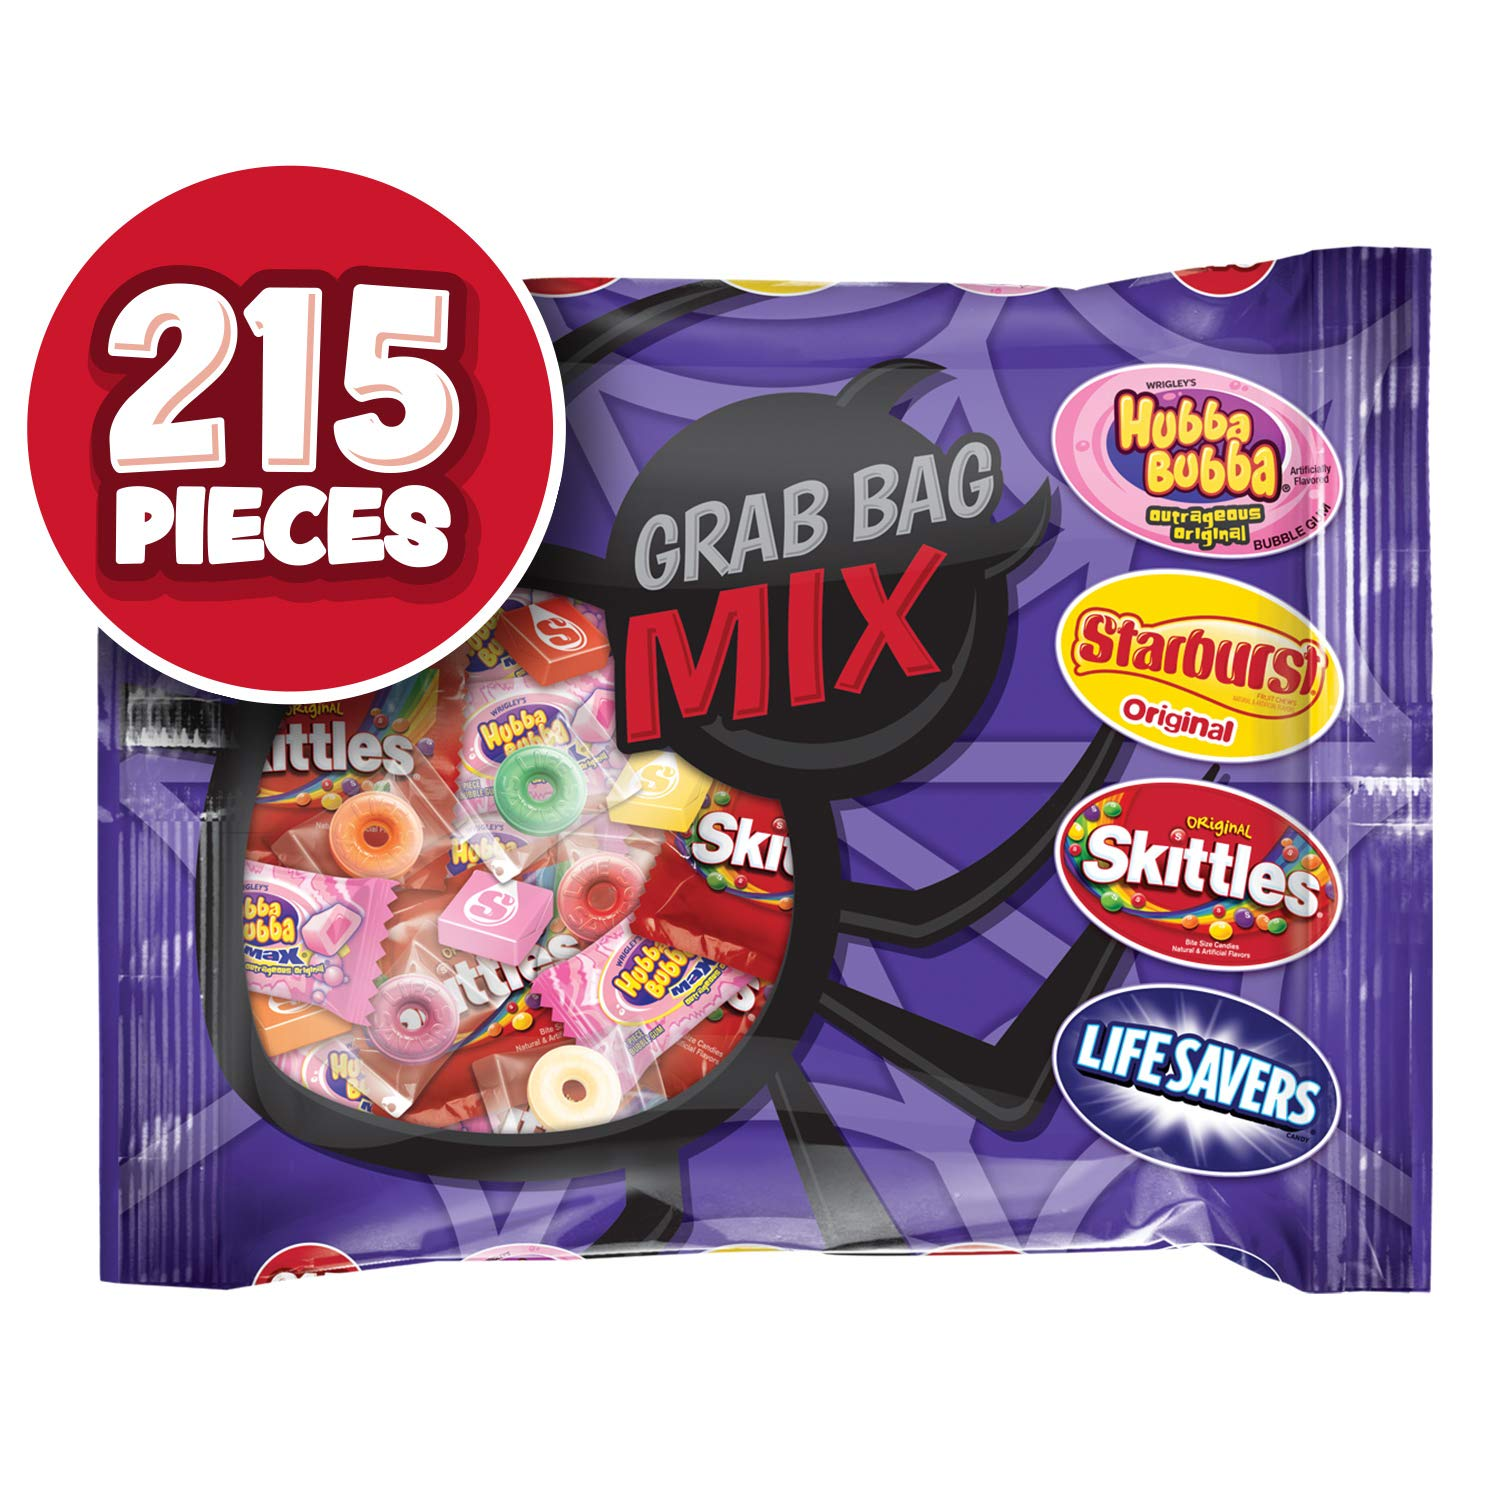 STARBURST, SKITTLES, LIFE SAVERS & HUBBA BUBBA Halloween Candy Fun Size Variety Mix, 82.98 Ounces, 215 Pieces by Assorted Wrigley